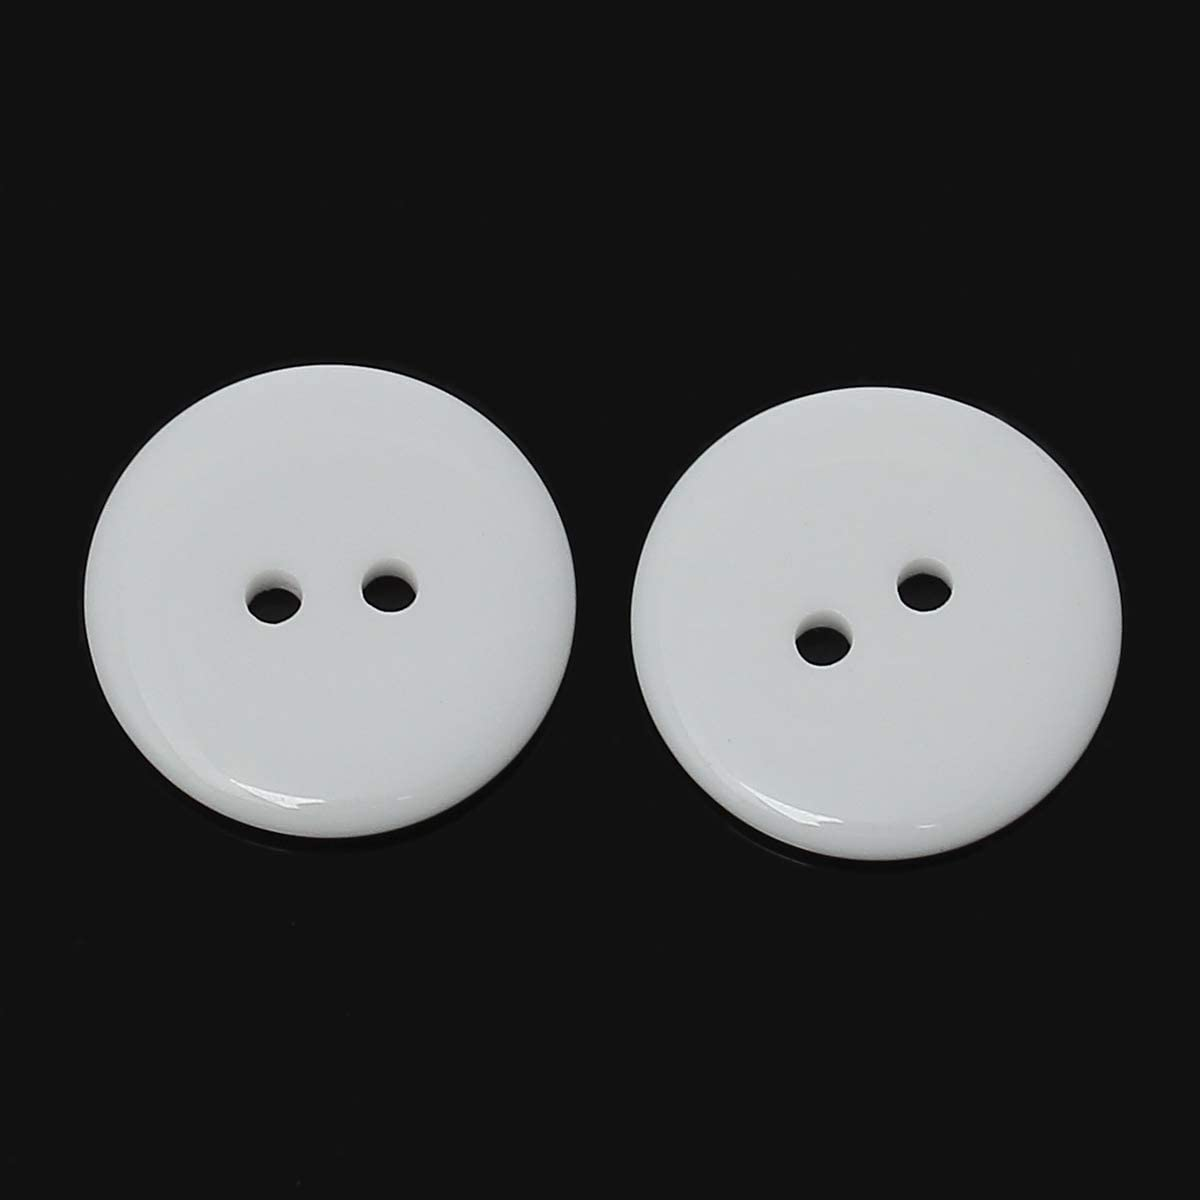 25mm Resin Button 1 Inch White Buttons Two Holes for Sewing and